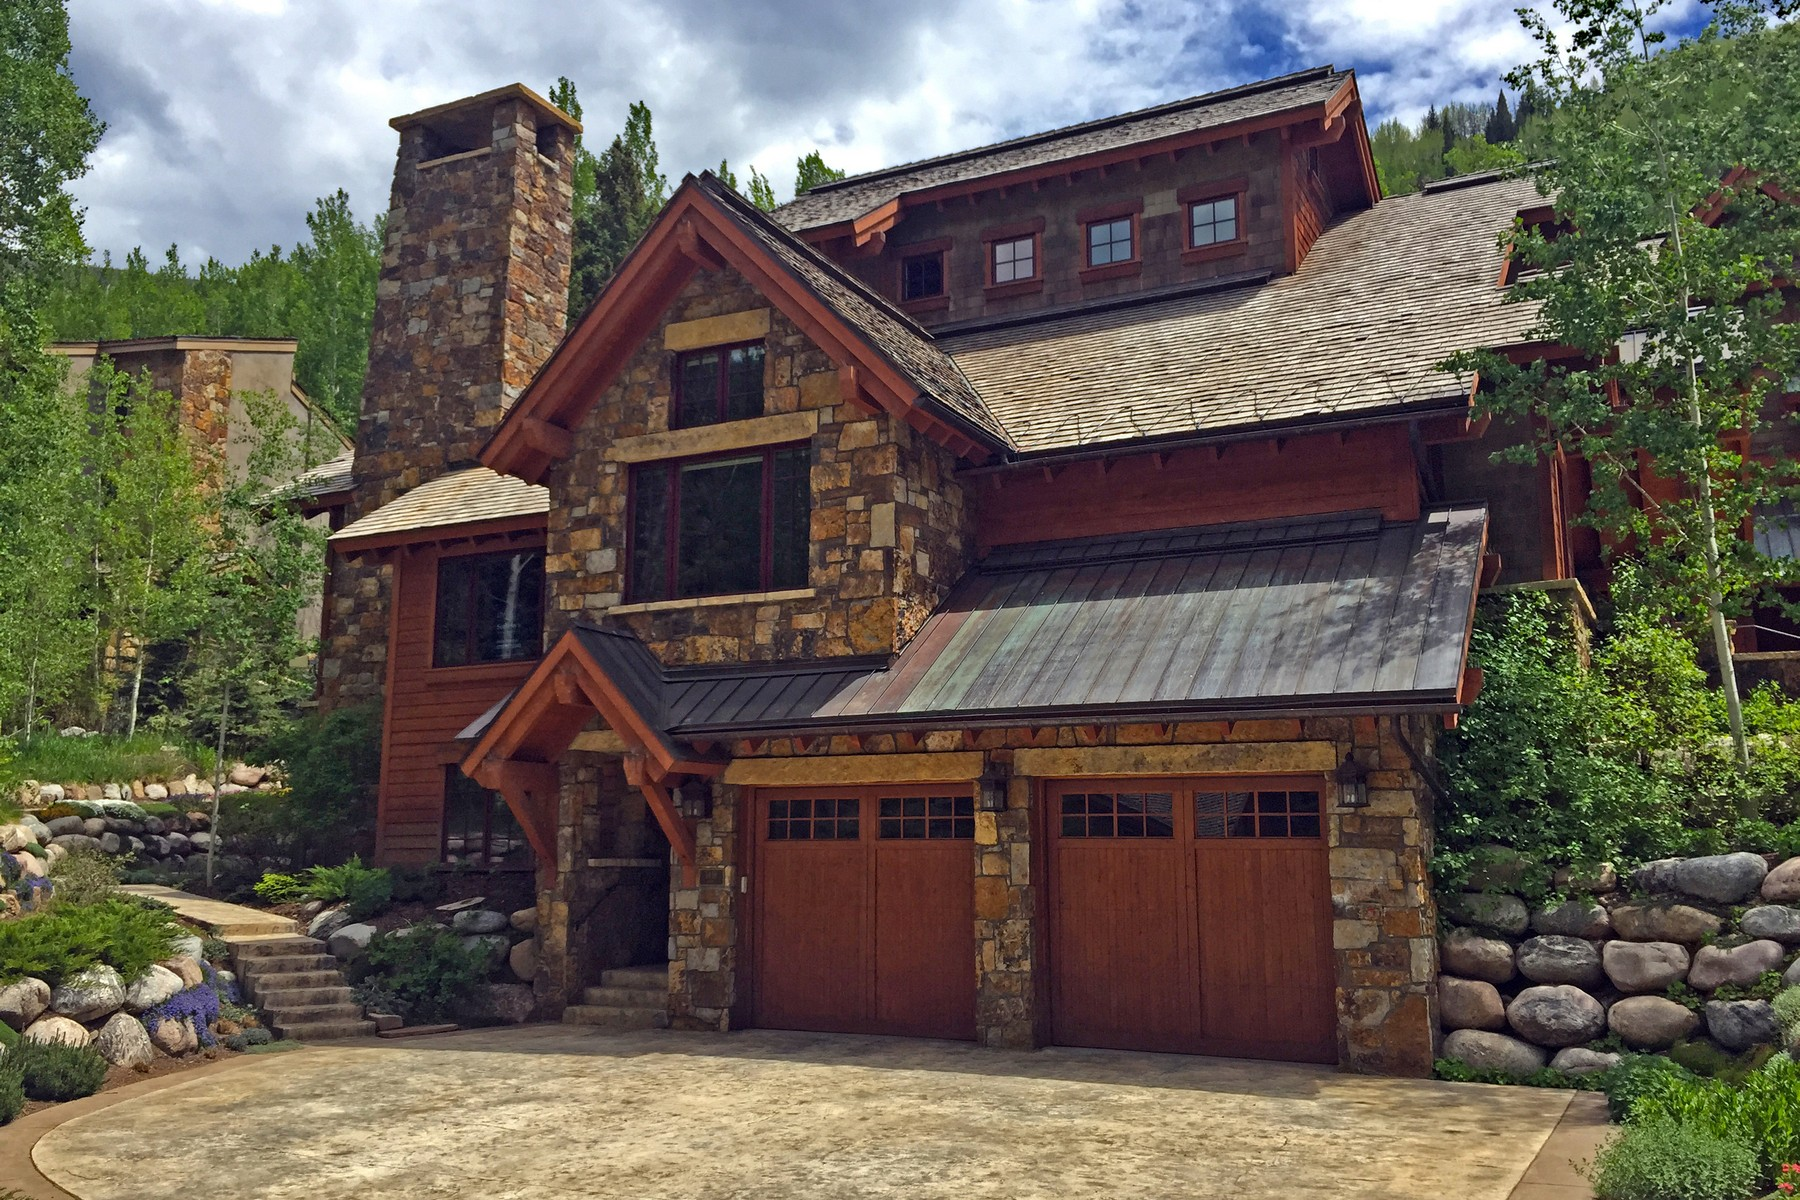 Loft/Duplex pour l Vente à Vail Golf Course Location 1418 Vail Valley Drive #E Vail Golf Course, Vail, Colorado 81657 États-Unis